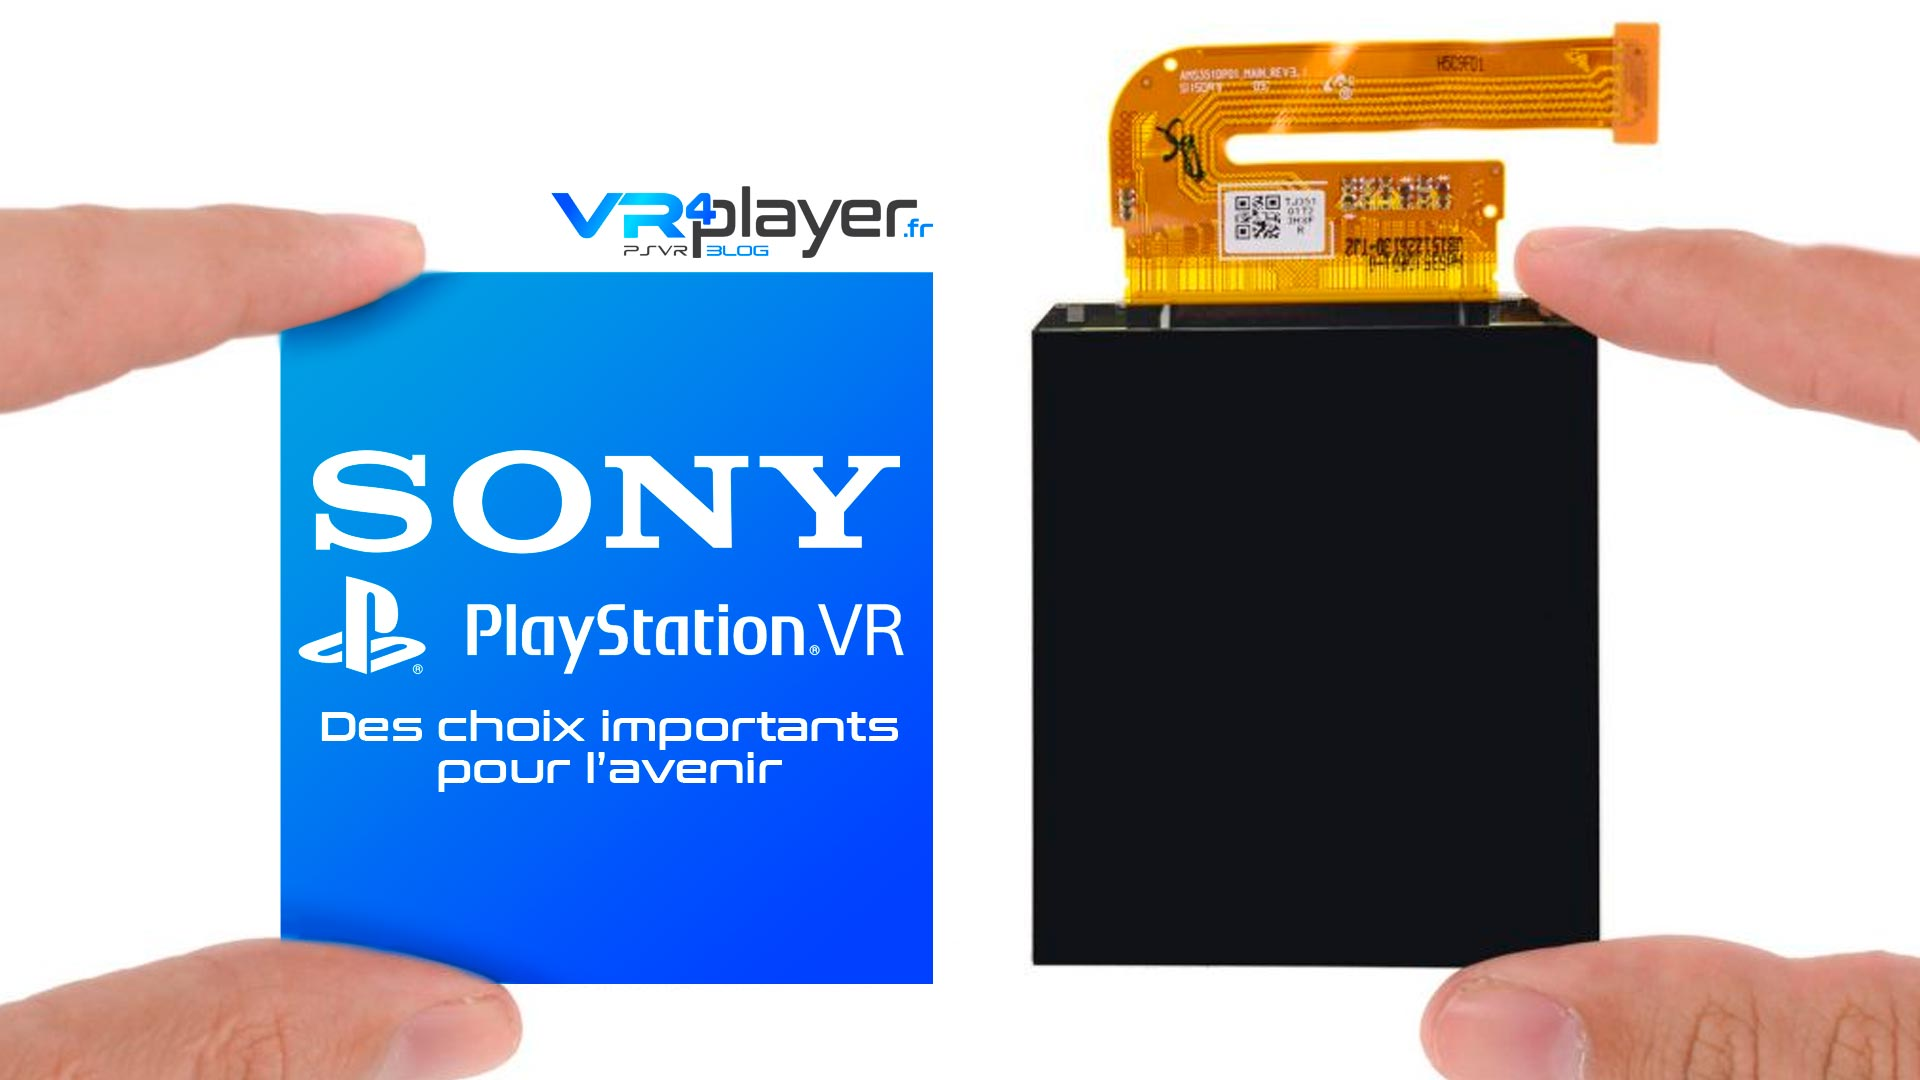 Sony des choix importants pour son avenir, PlayStation VR VR4Player